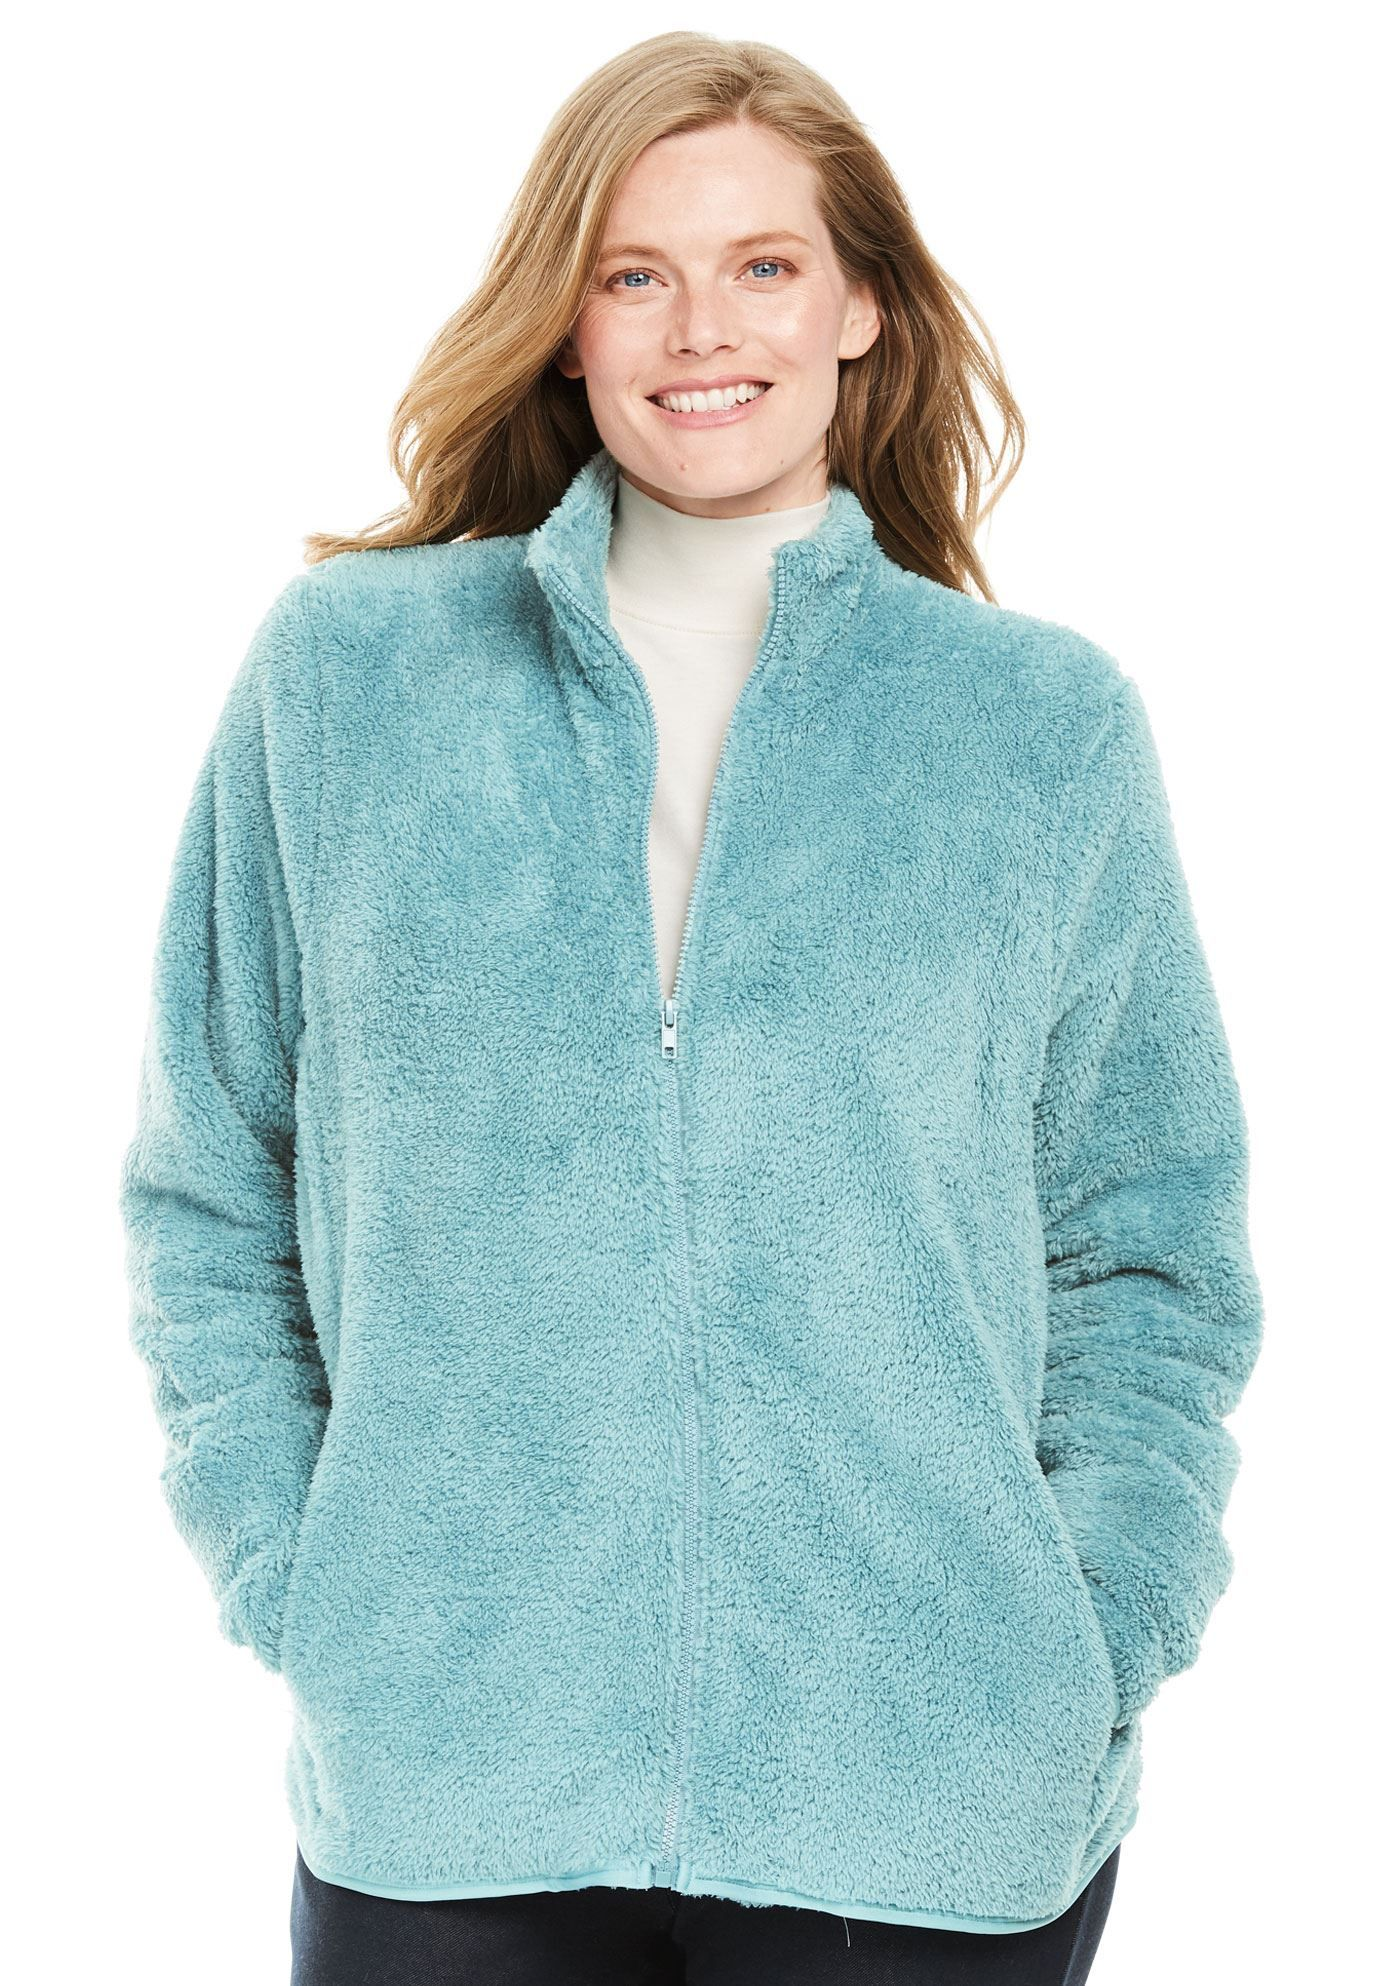 356fdfbd5f7 Fluffy Fleece Jacket - Women s Plus Size Clothing